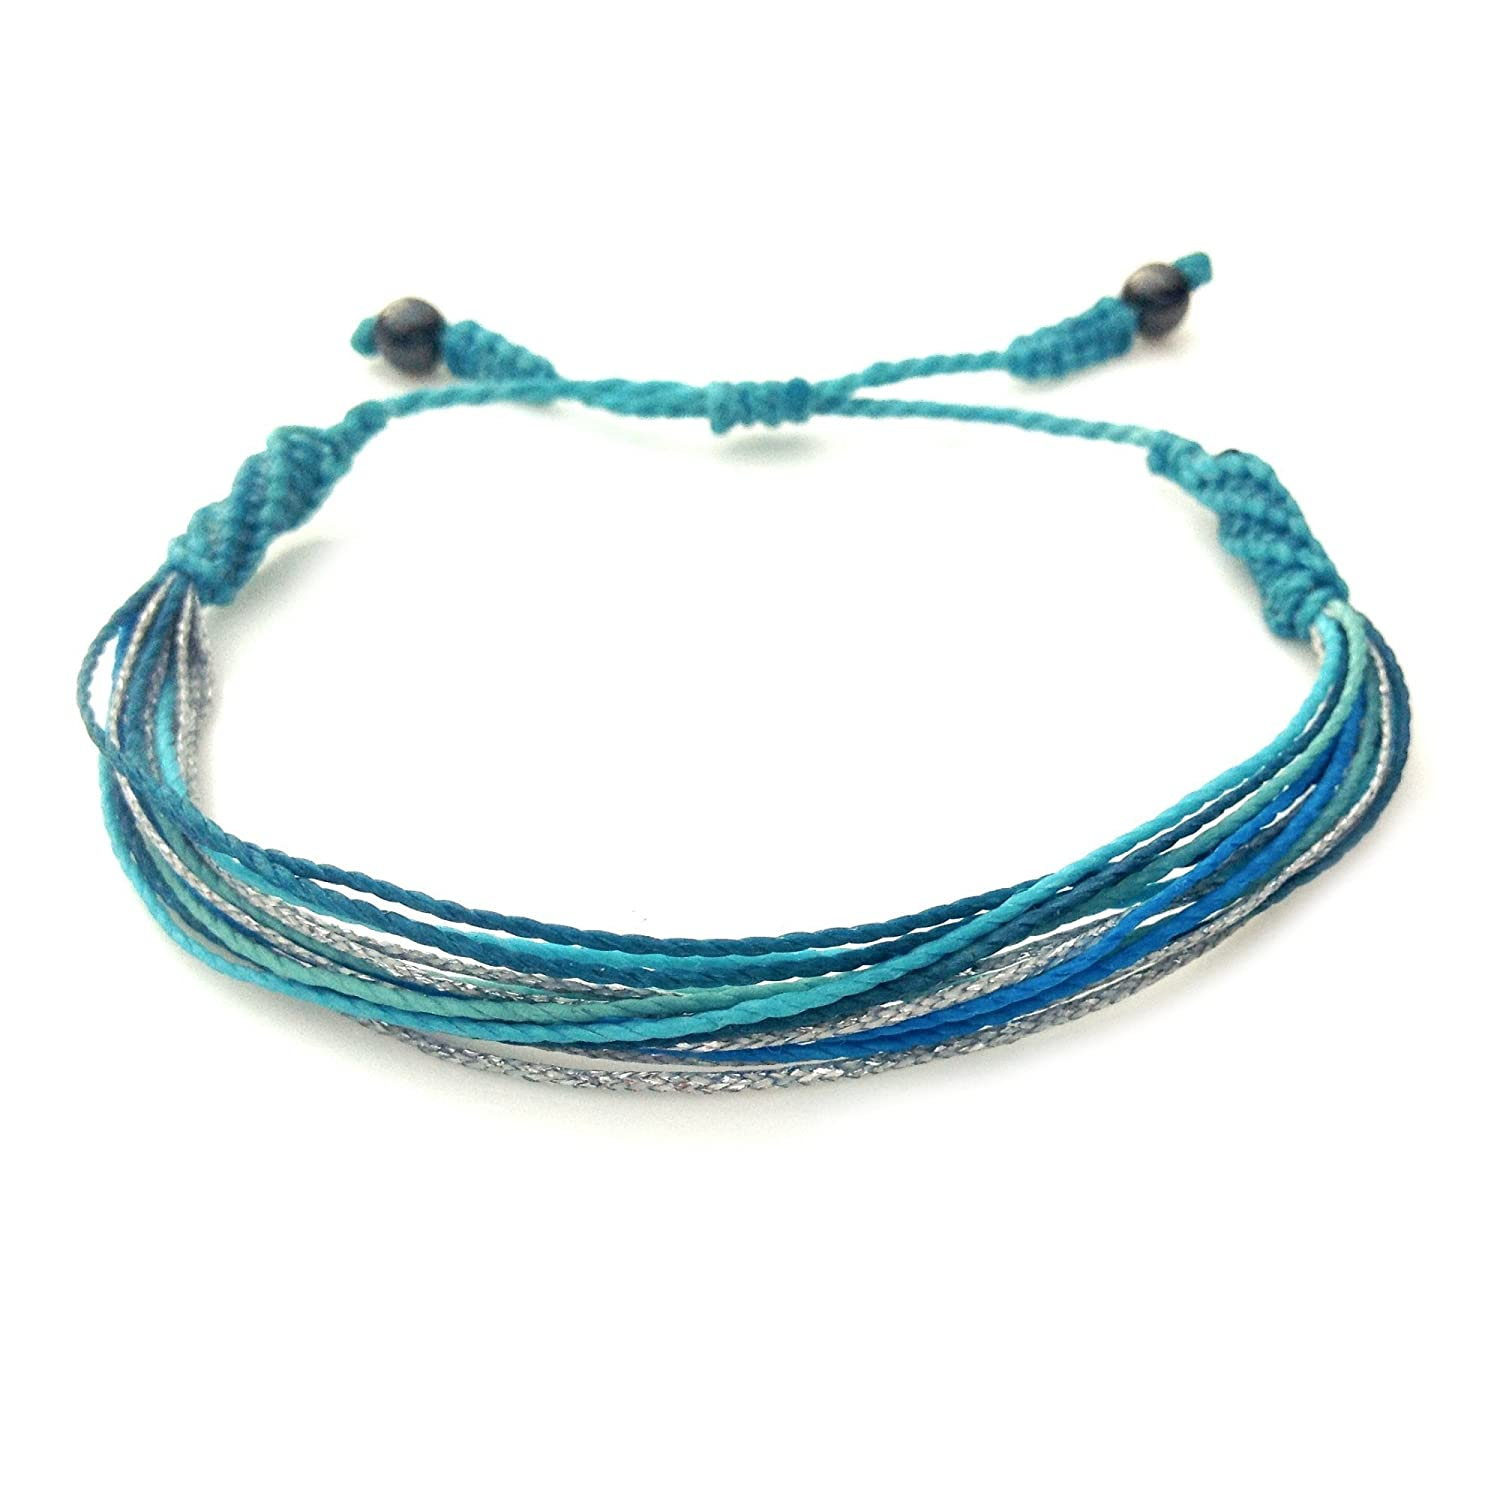 Mens and Womens Hawaii String Surf Bracelet with Hematite Stones in Aqua Blues and Metallic Silver: Handmade Pull Cord Ocean Surfer Bracelet by Rumi Sumaq